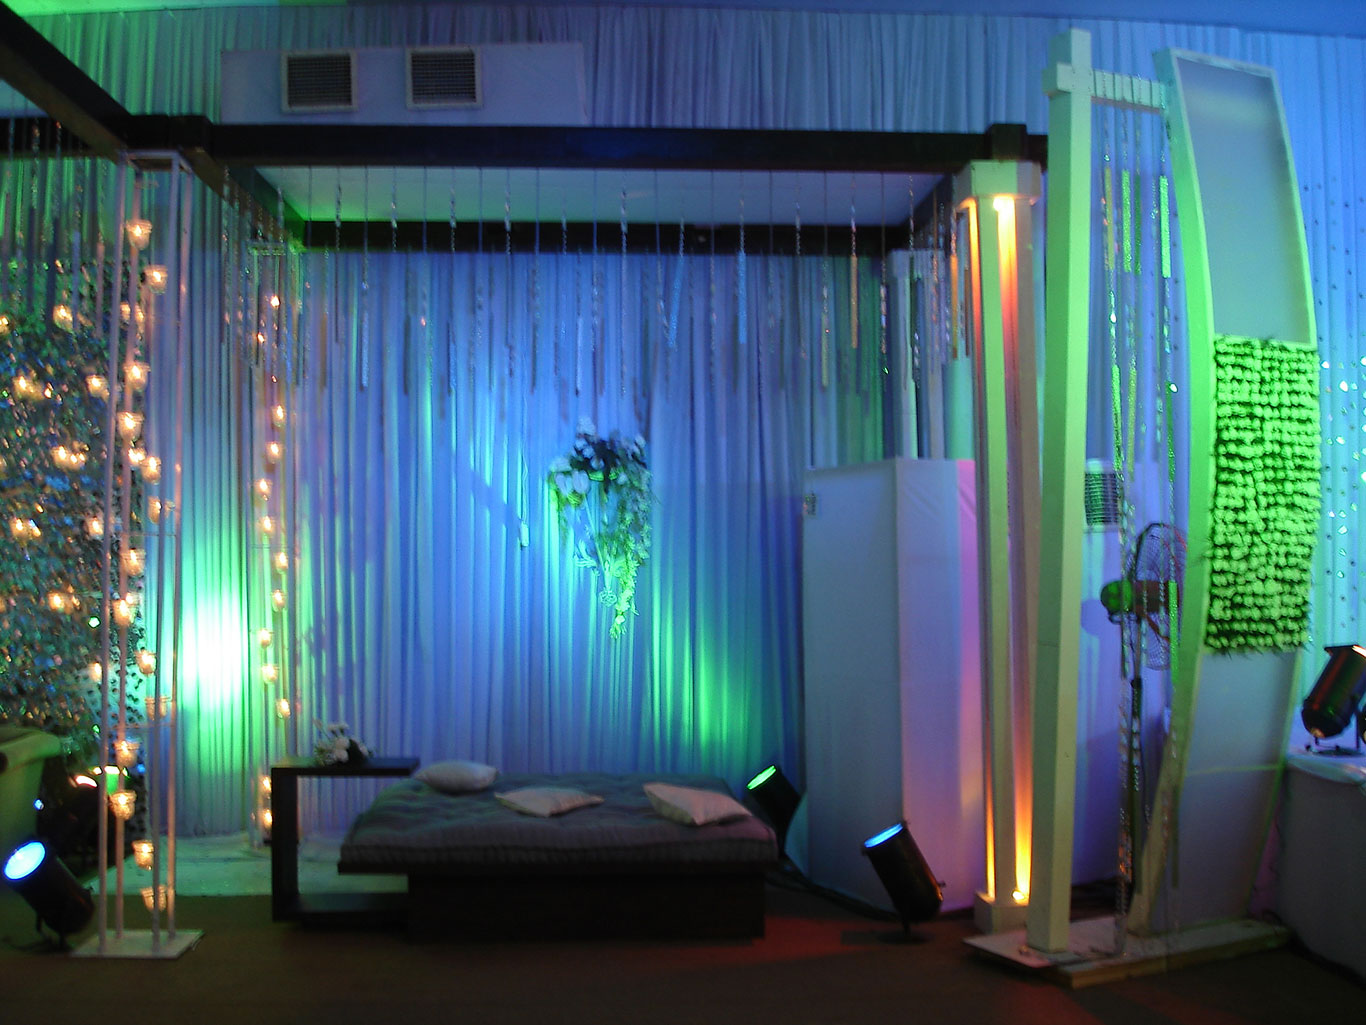 Wedding Decoration Flowers and Lights - Farm House, New Delhi